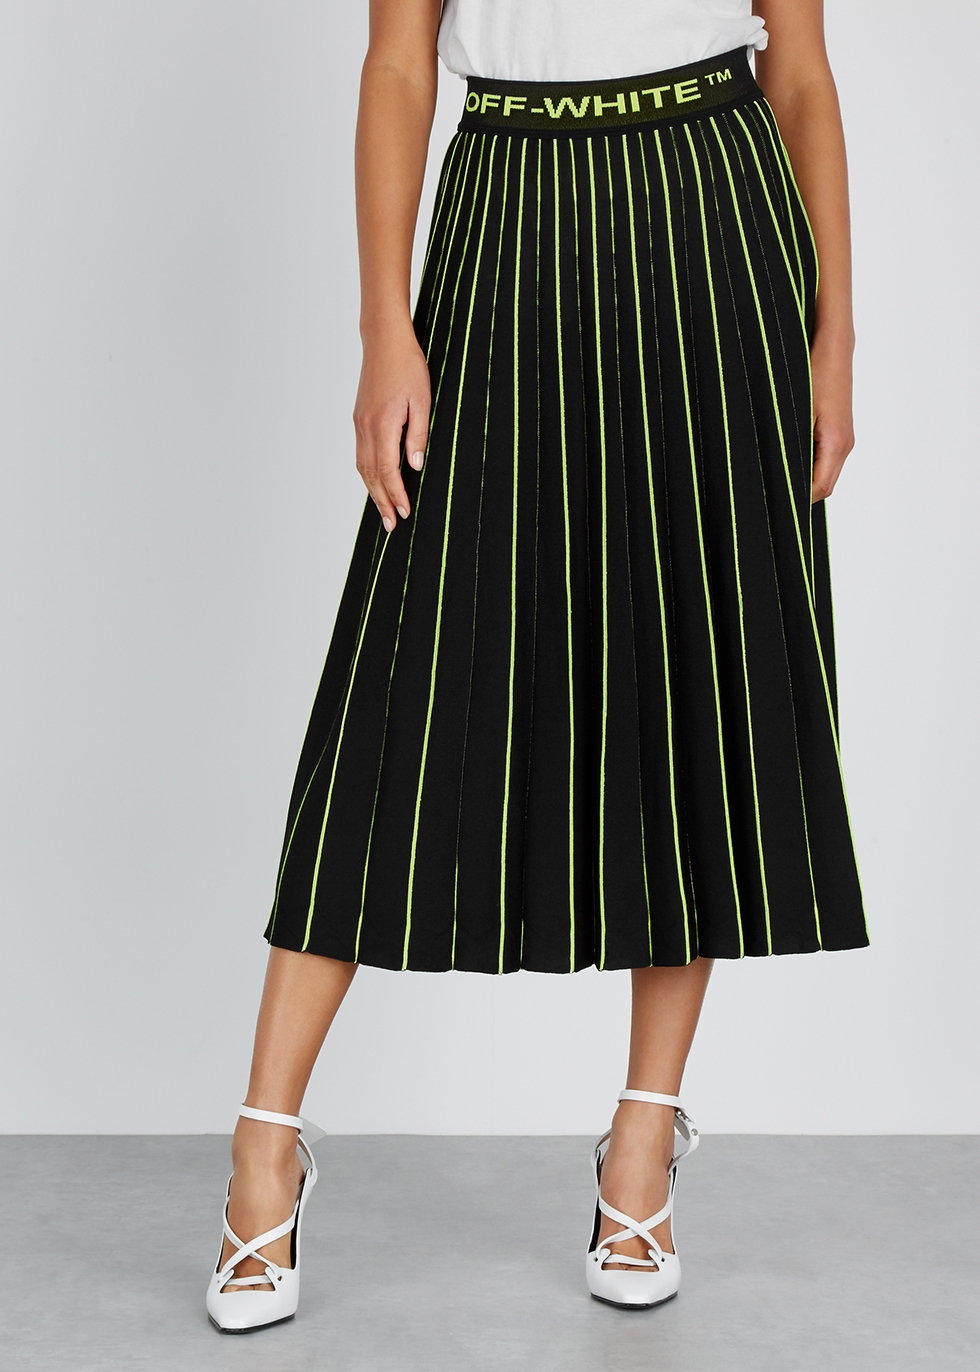 Black pleated stretch-knit skirt - Off-White